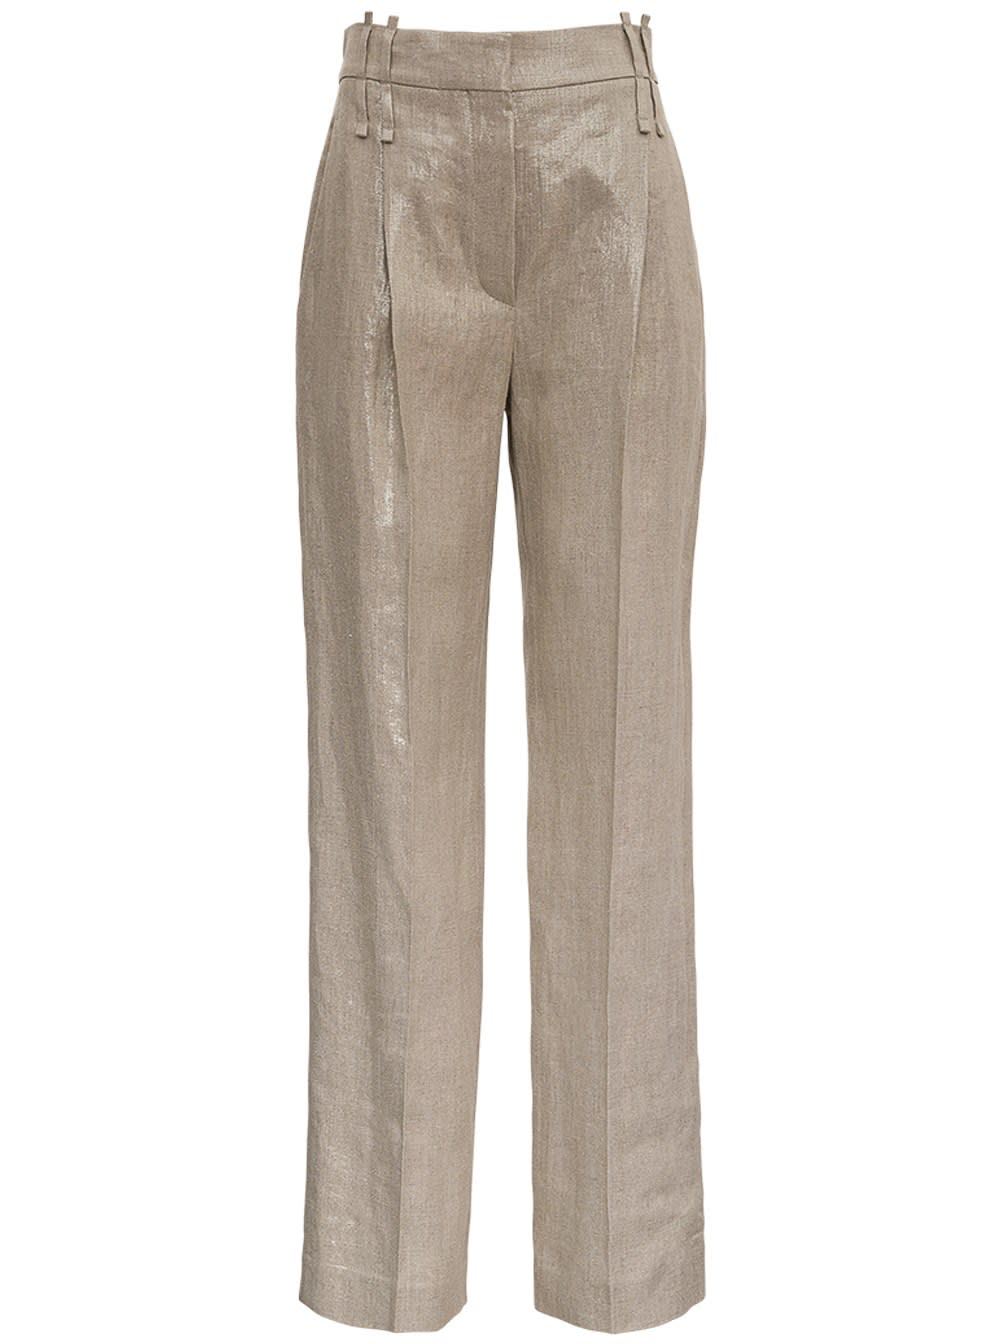 Brunello Cucinelli Pants TAILORED PANTS IN SHINY LINEN